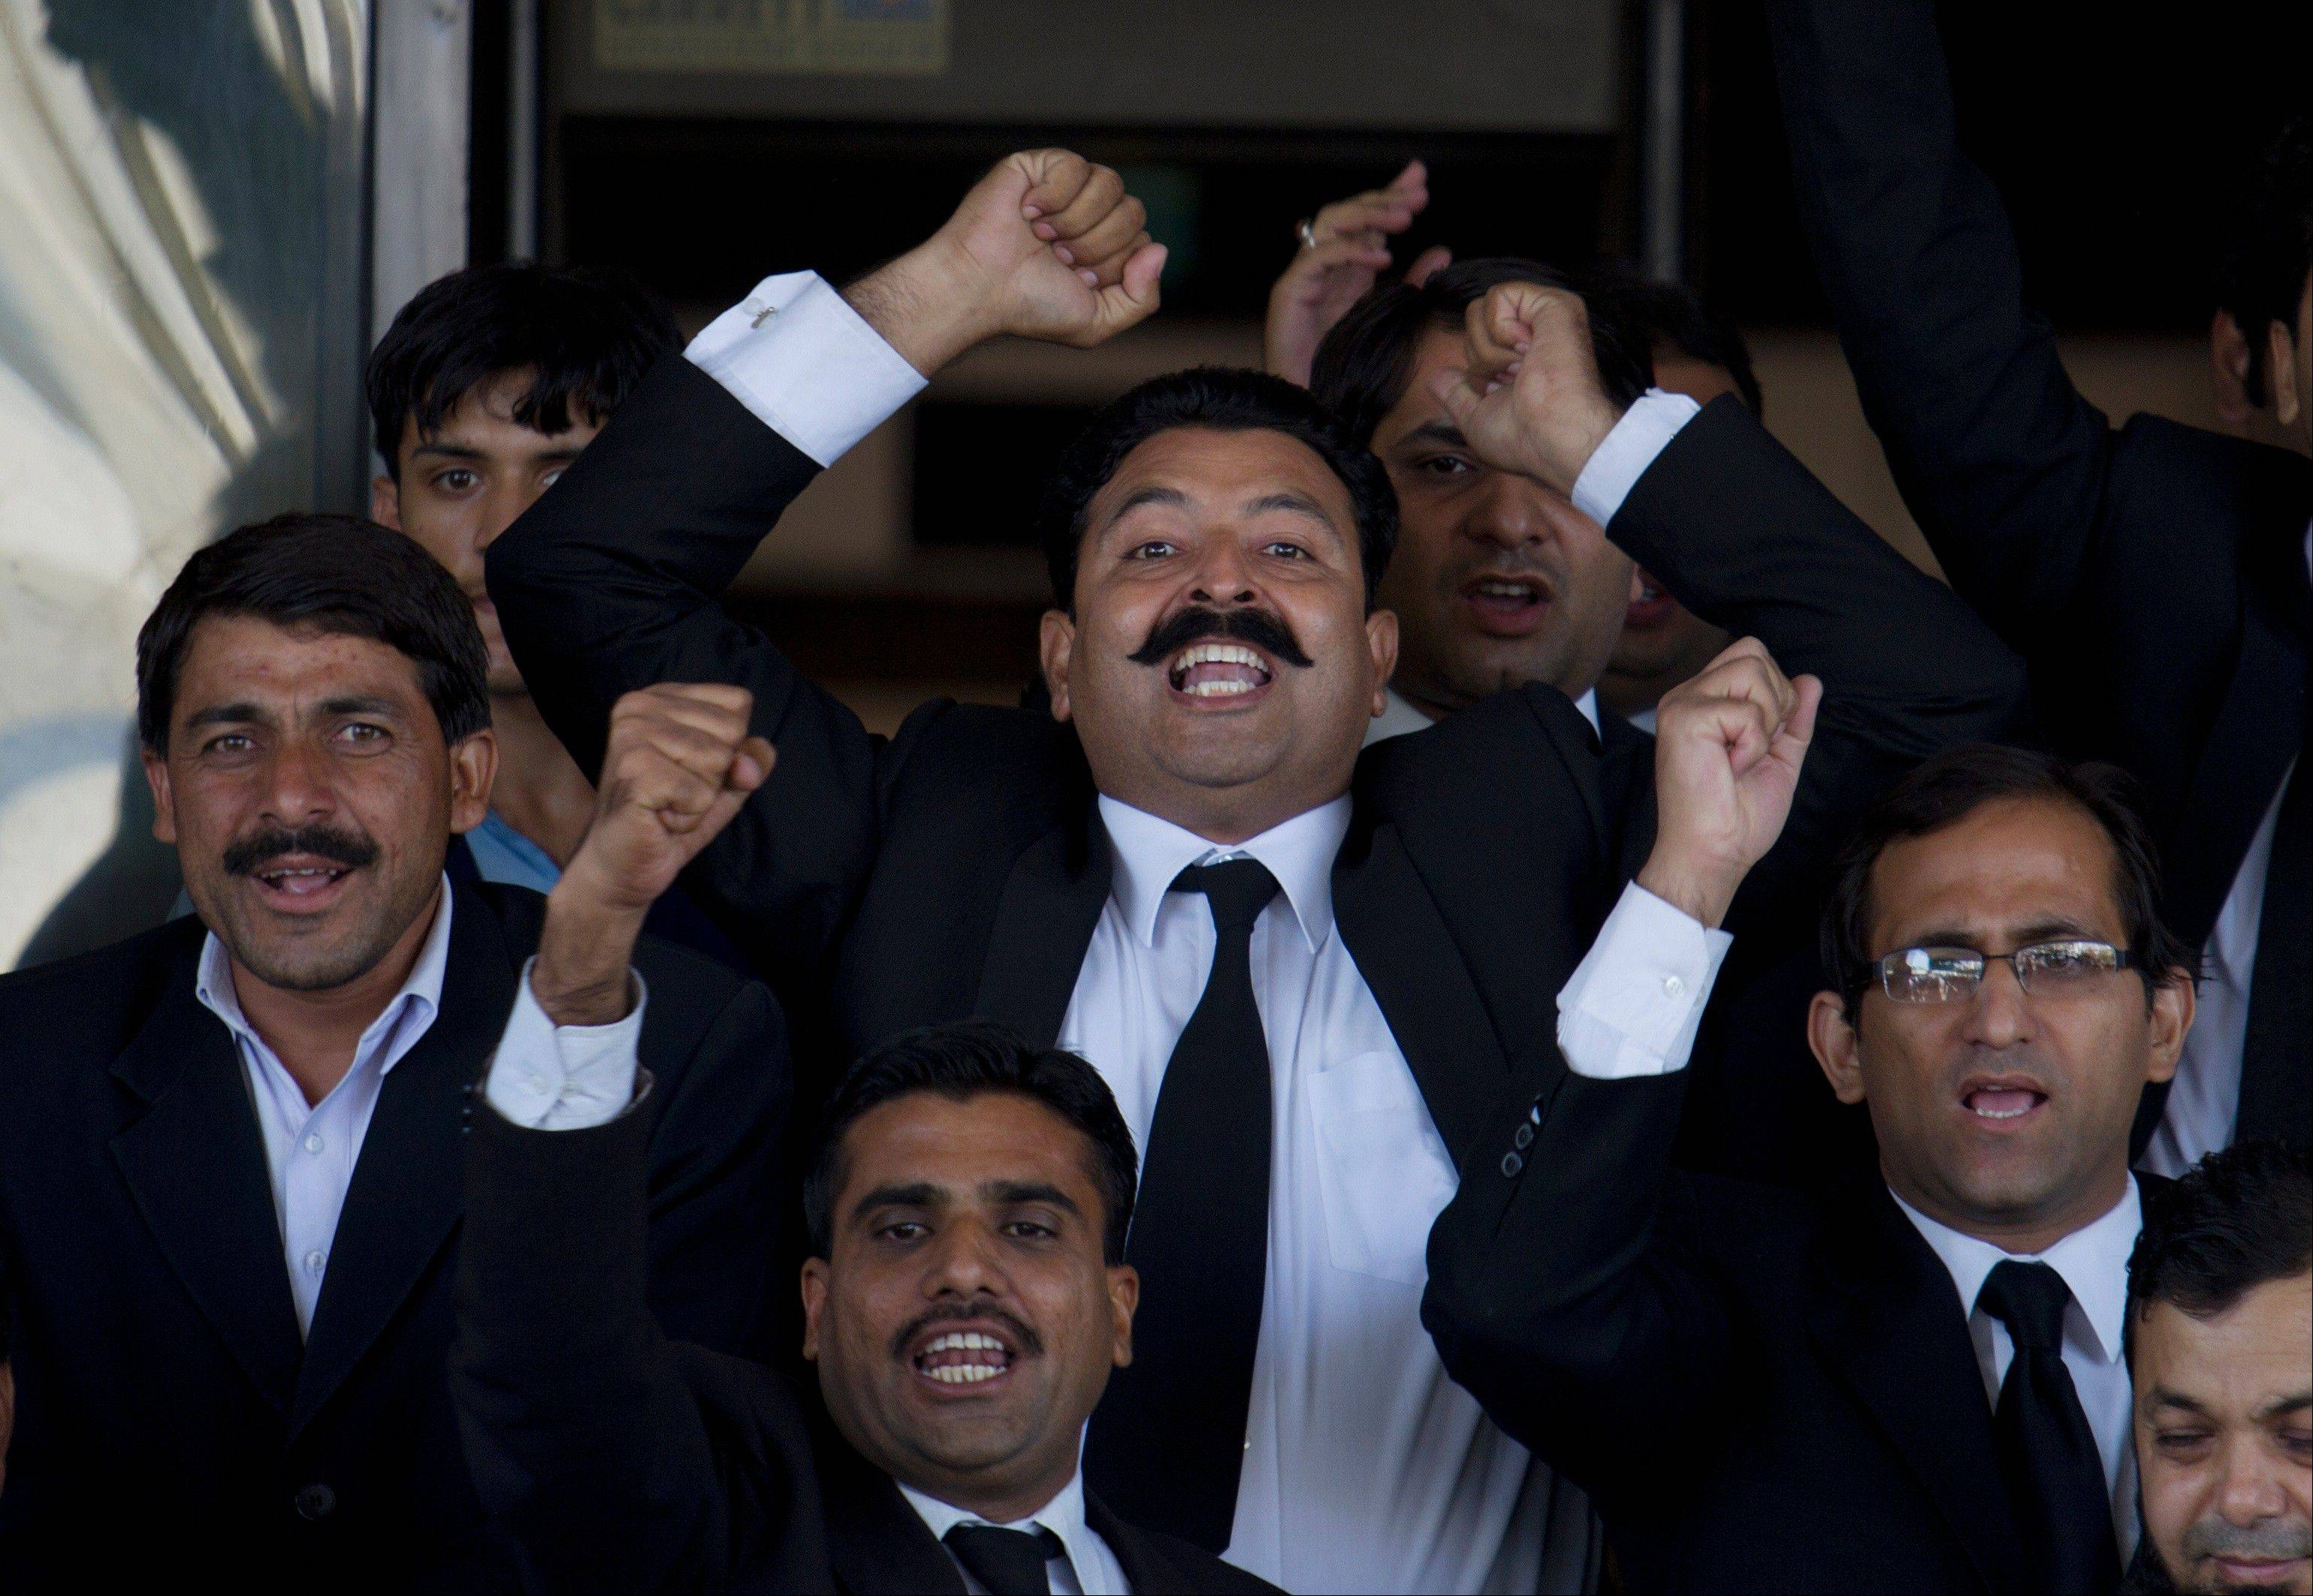 Pakistani lawyers chant slogans Tuesday in favor of the Supreme Court's decision against Pakistan's Prime Minister, Yousuf Reza Gilani, outside the court in Islamabad, Pakistan.